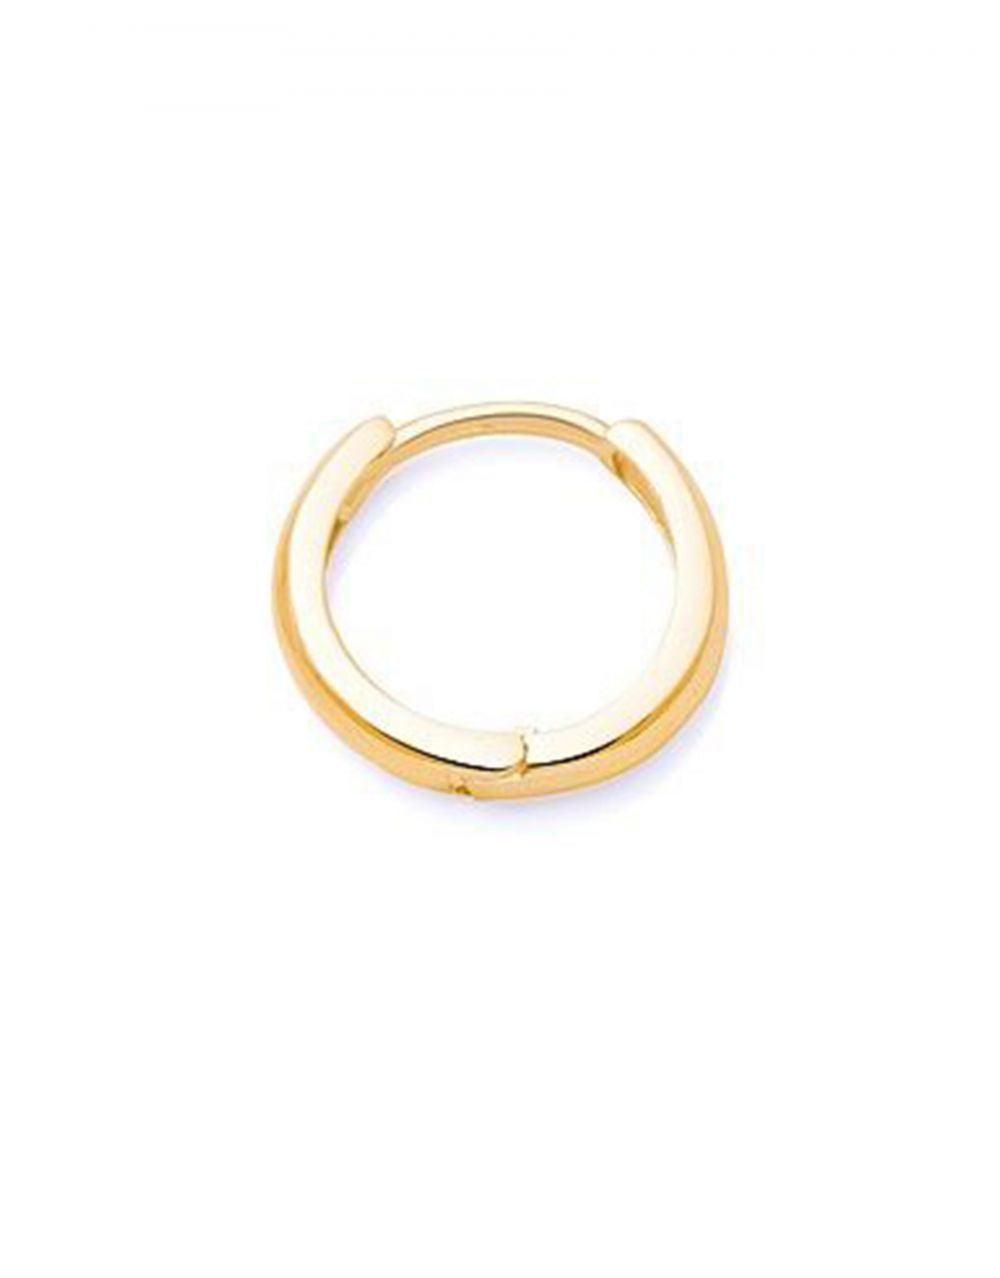 Mini Gold Hoop Piercing<br /><i><small>14K Yellow Gold</small></i><br /> - Eddera